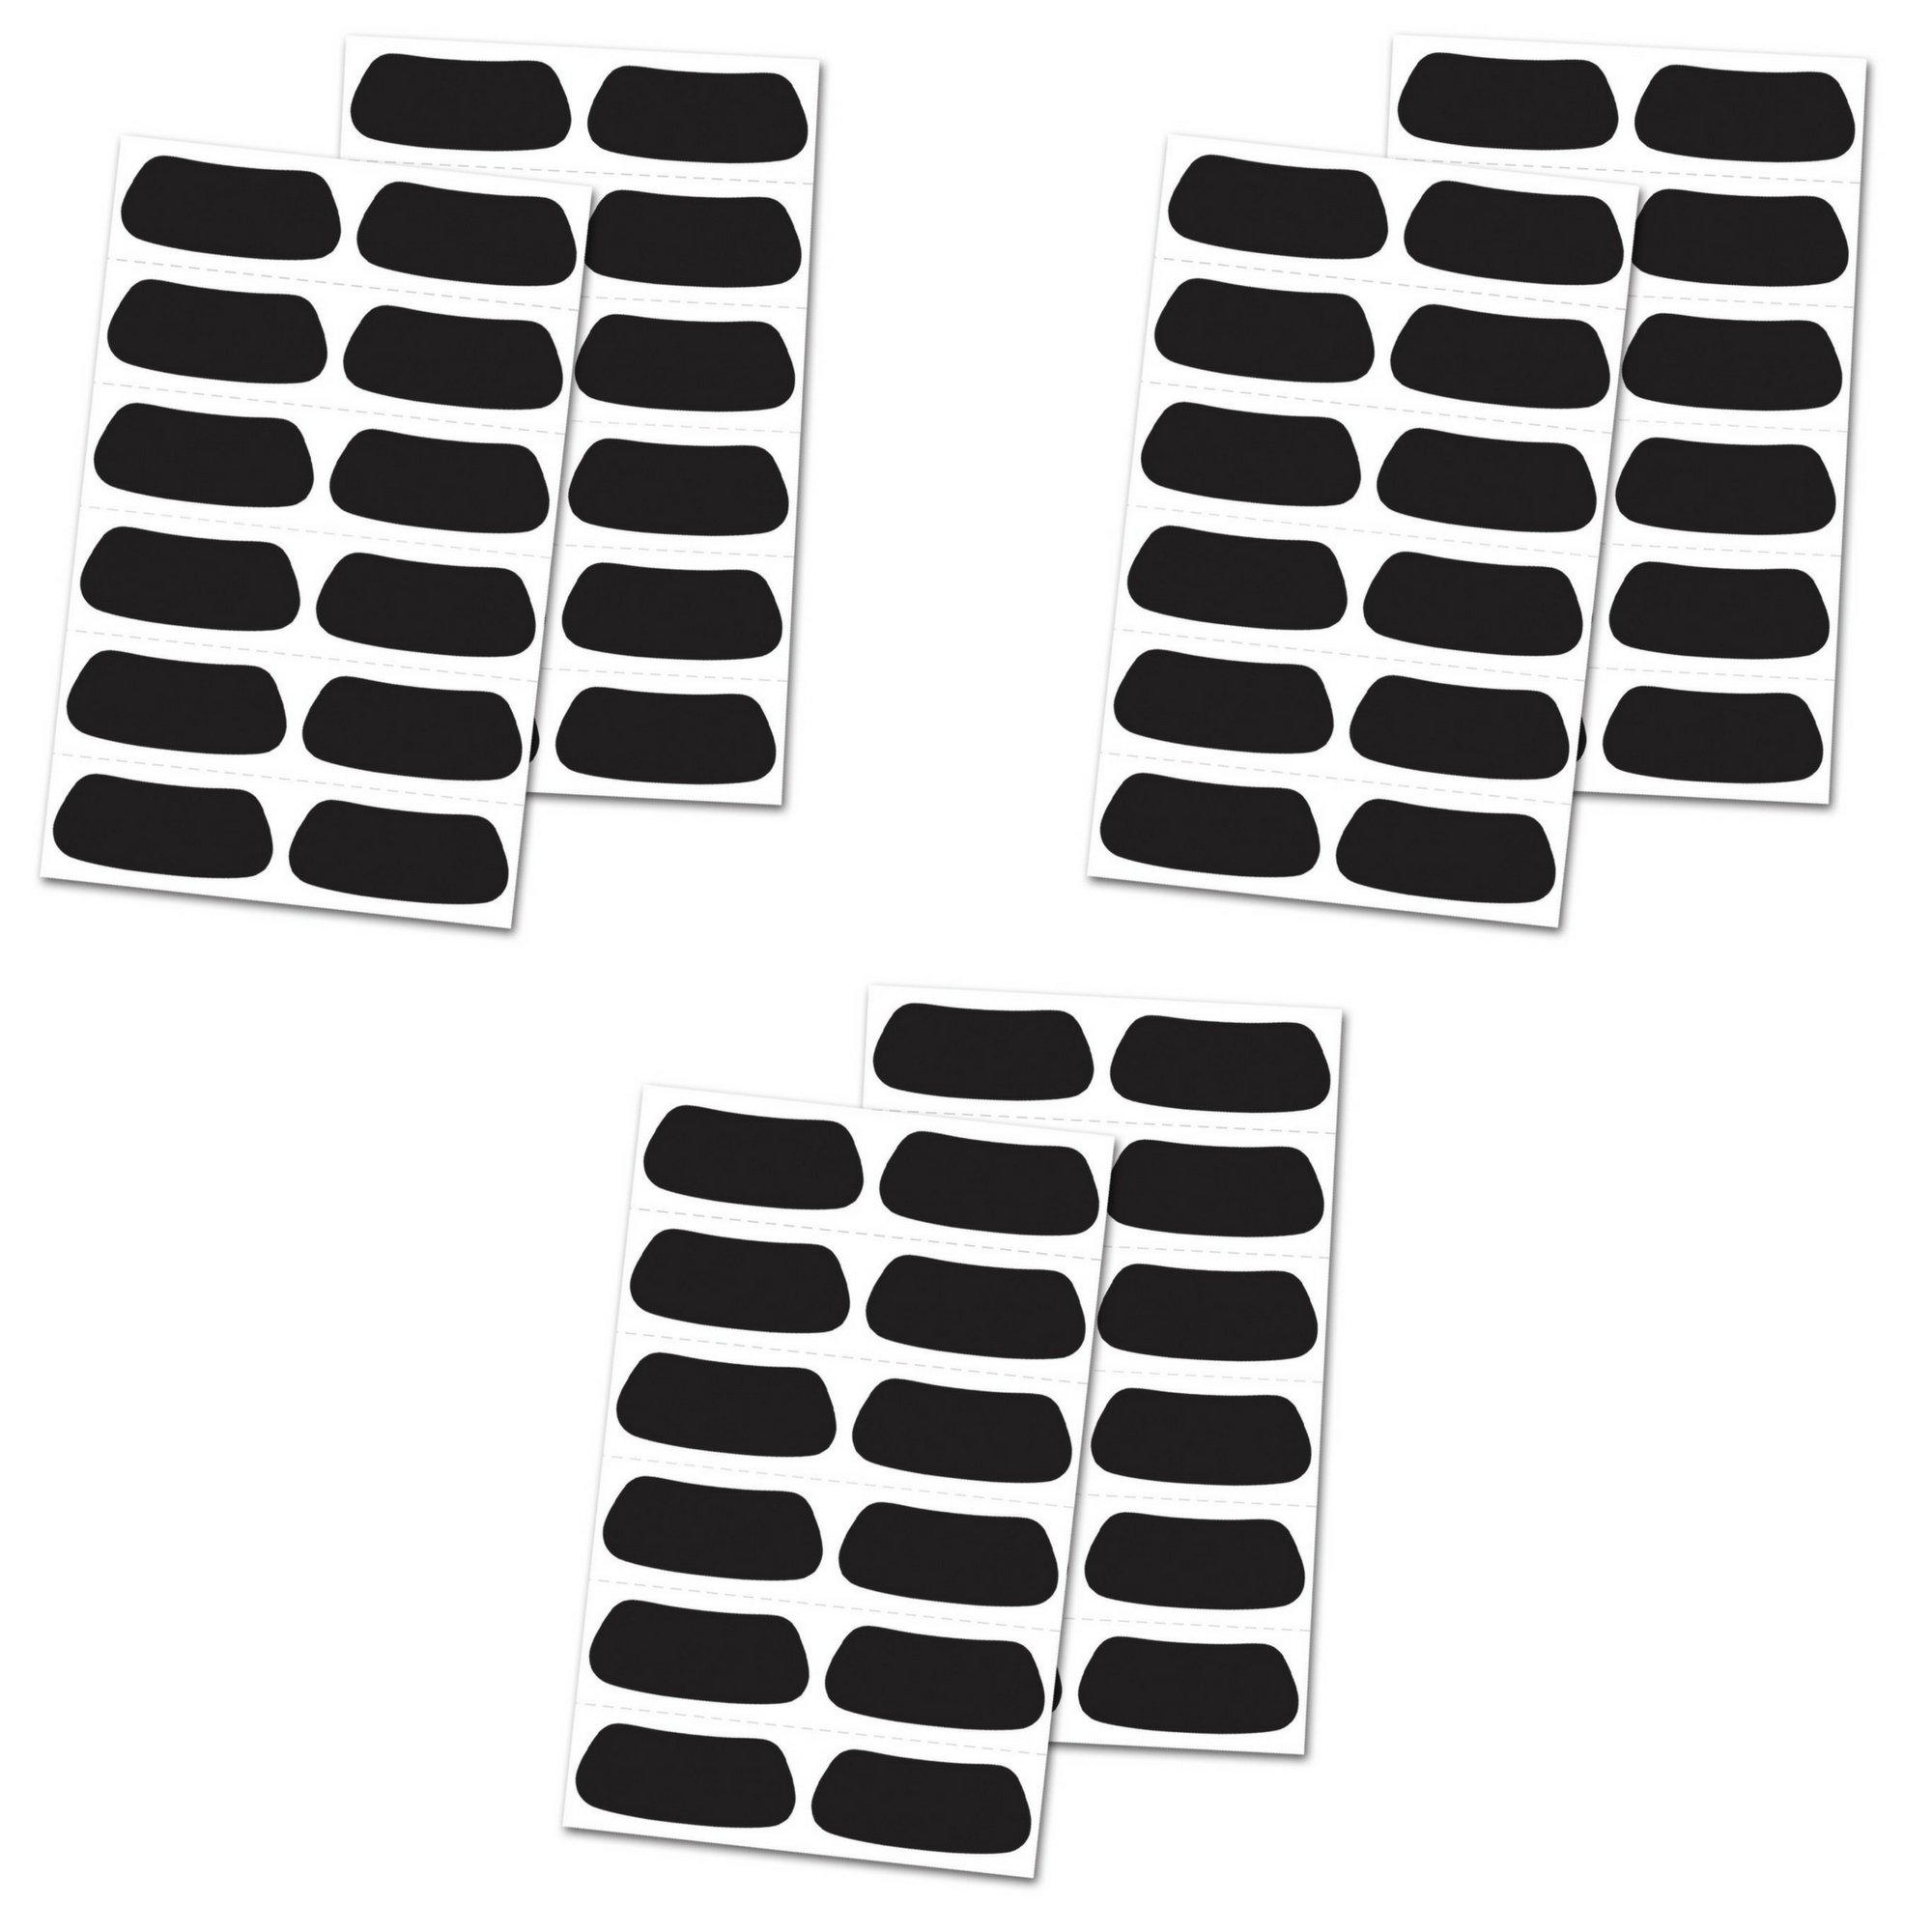 Rawlings Eye Black Stickers 3-Pack (36 Pairs Total) Baseball/Softball/Football/Lacrosse/Sports